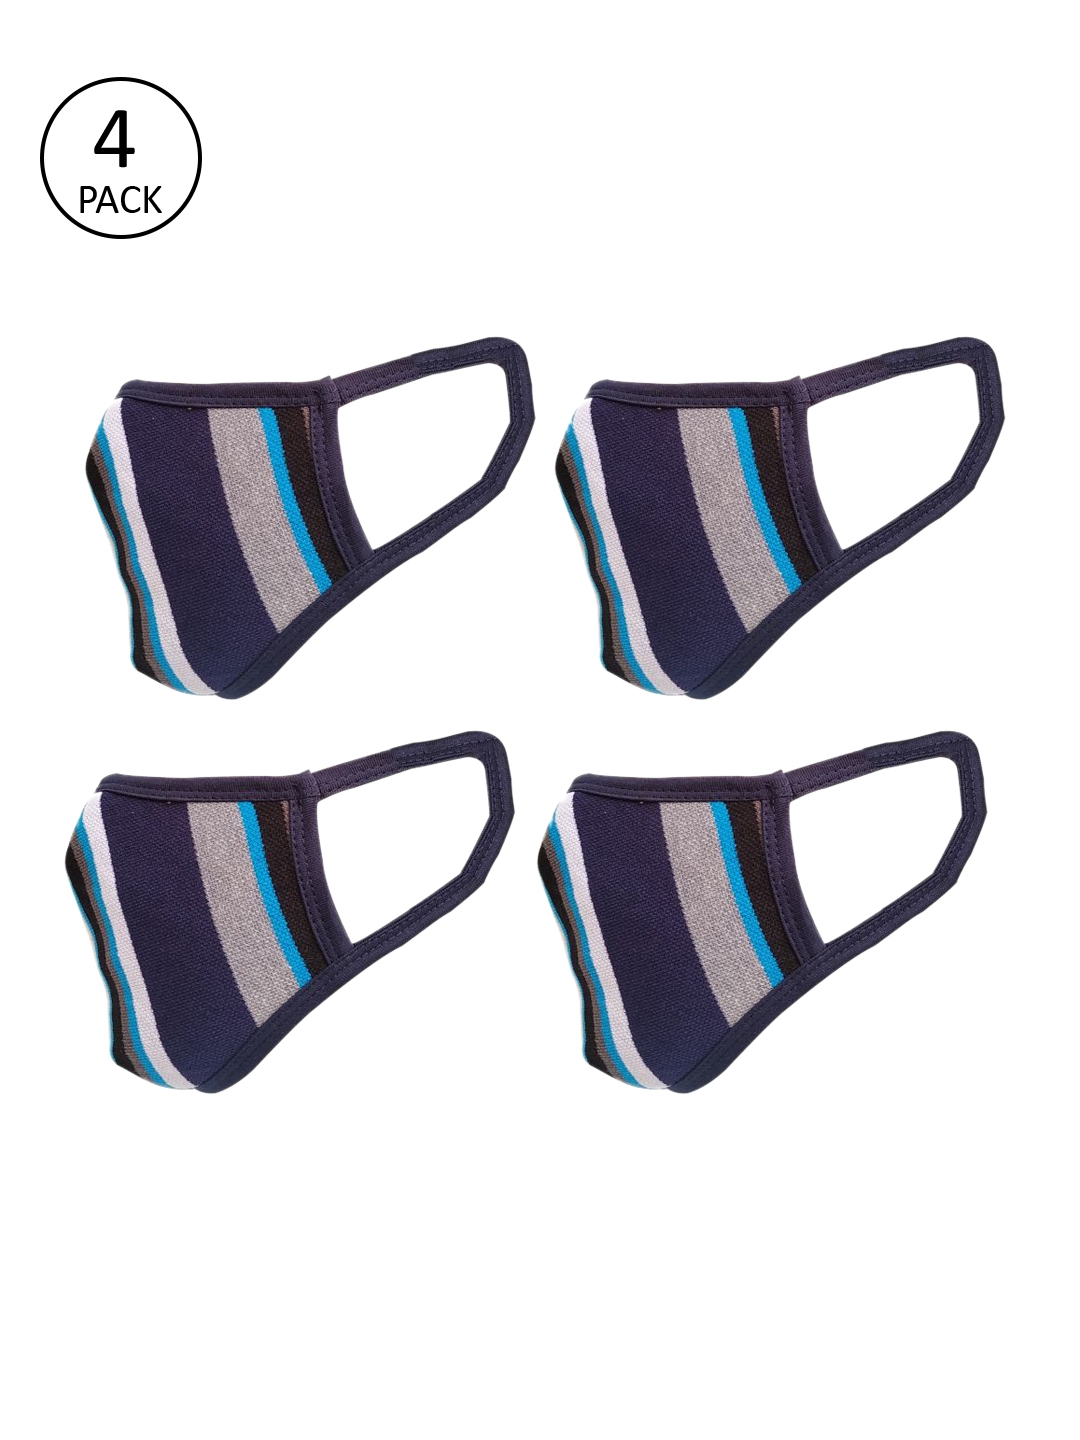 nestroots Unisex Multicolor Pack of 4 Reusable 2 Ply Protective Outdoor Masks